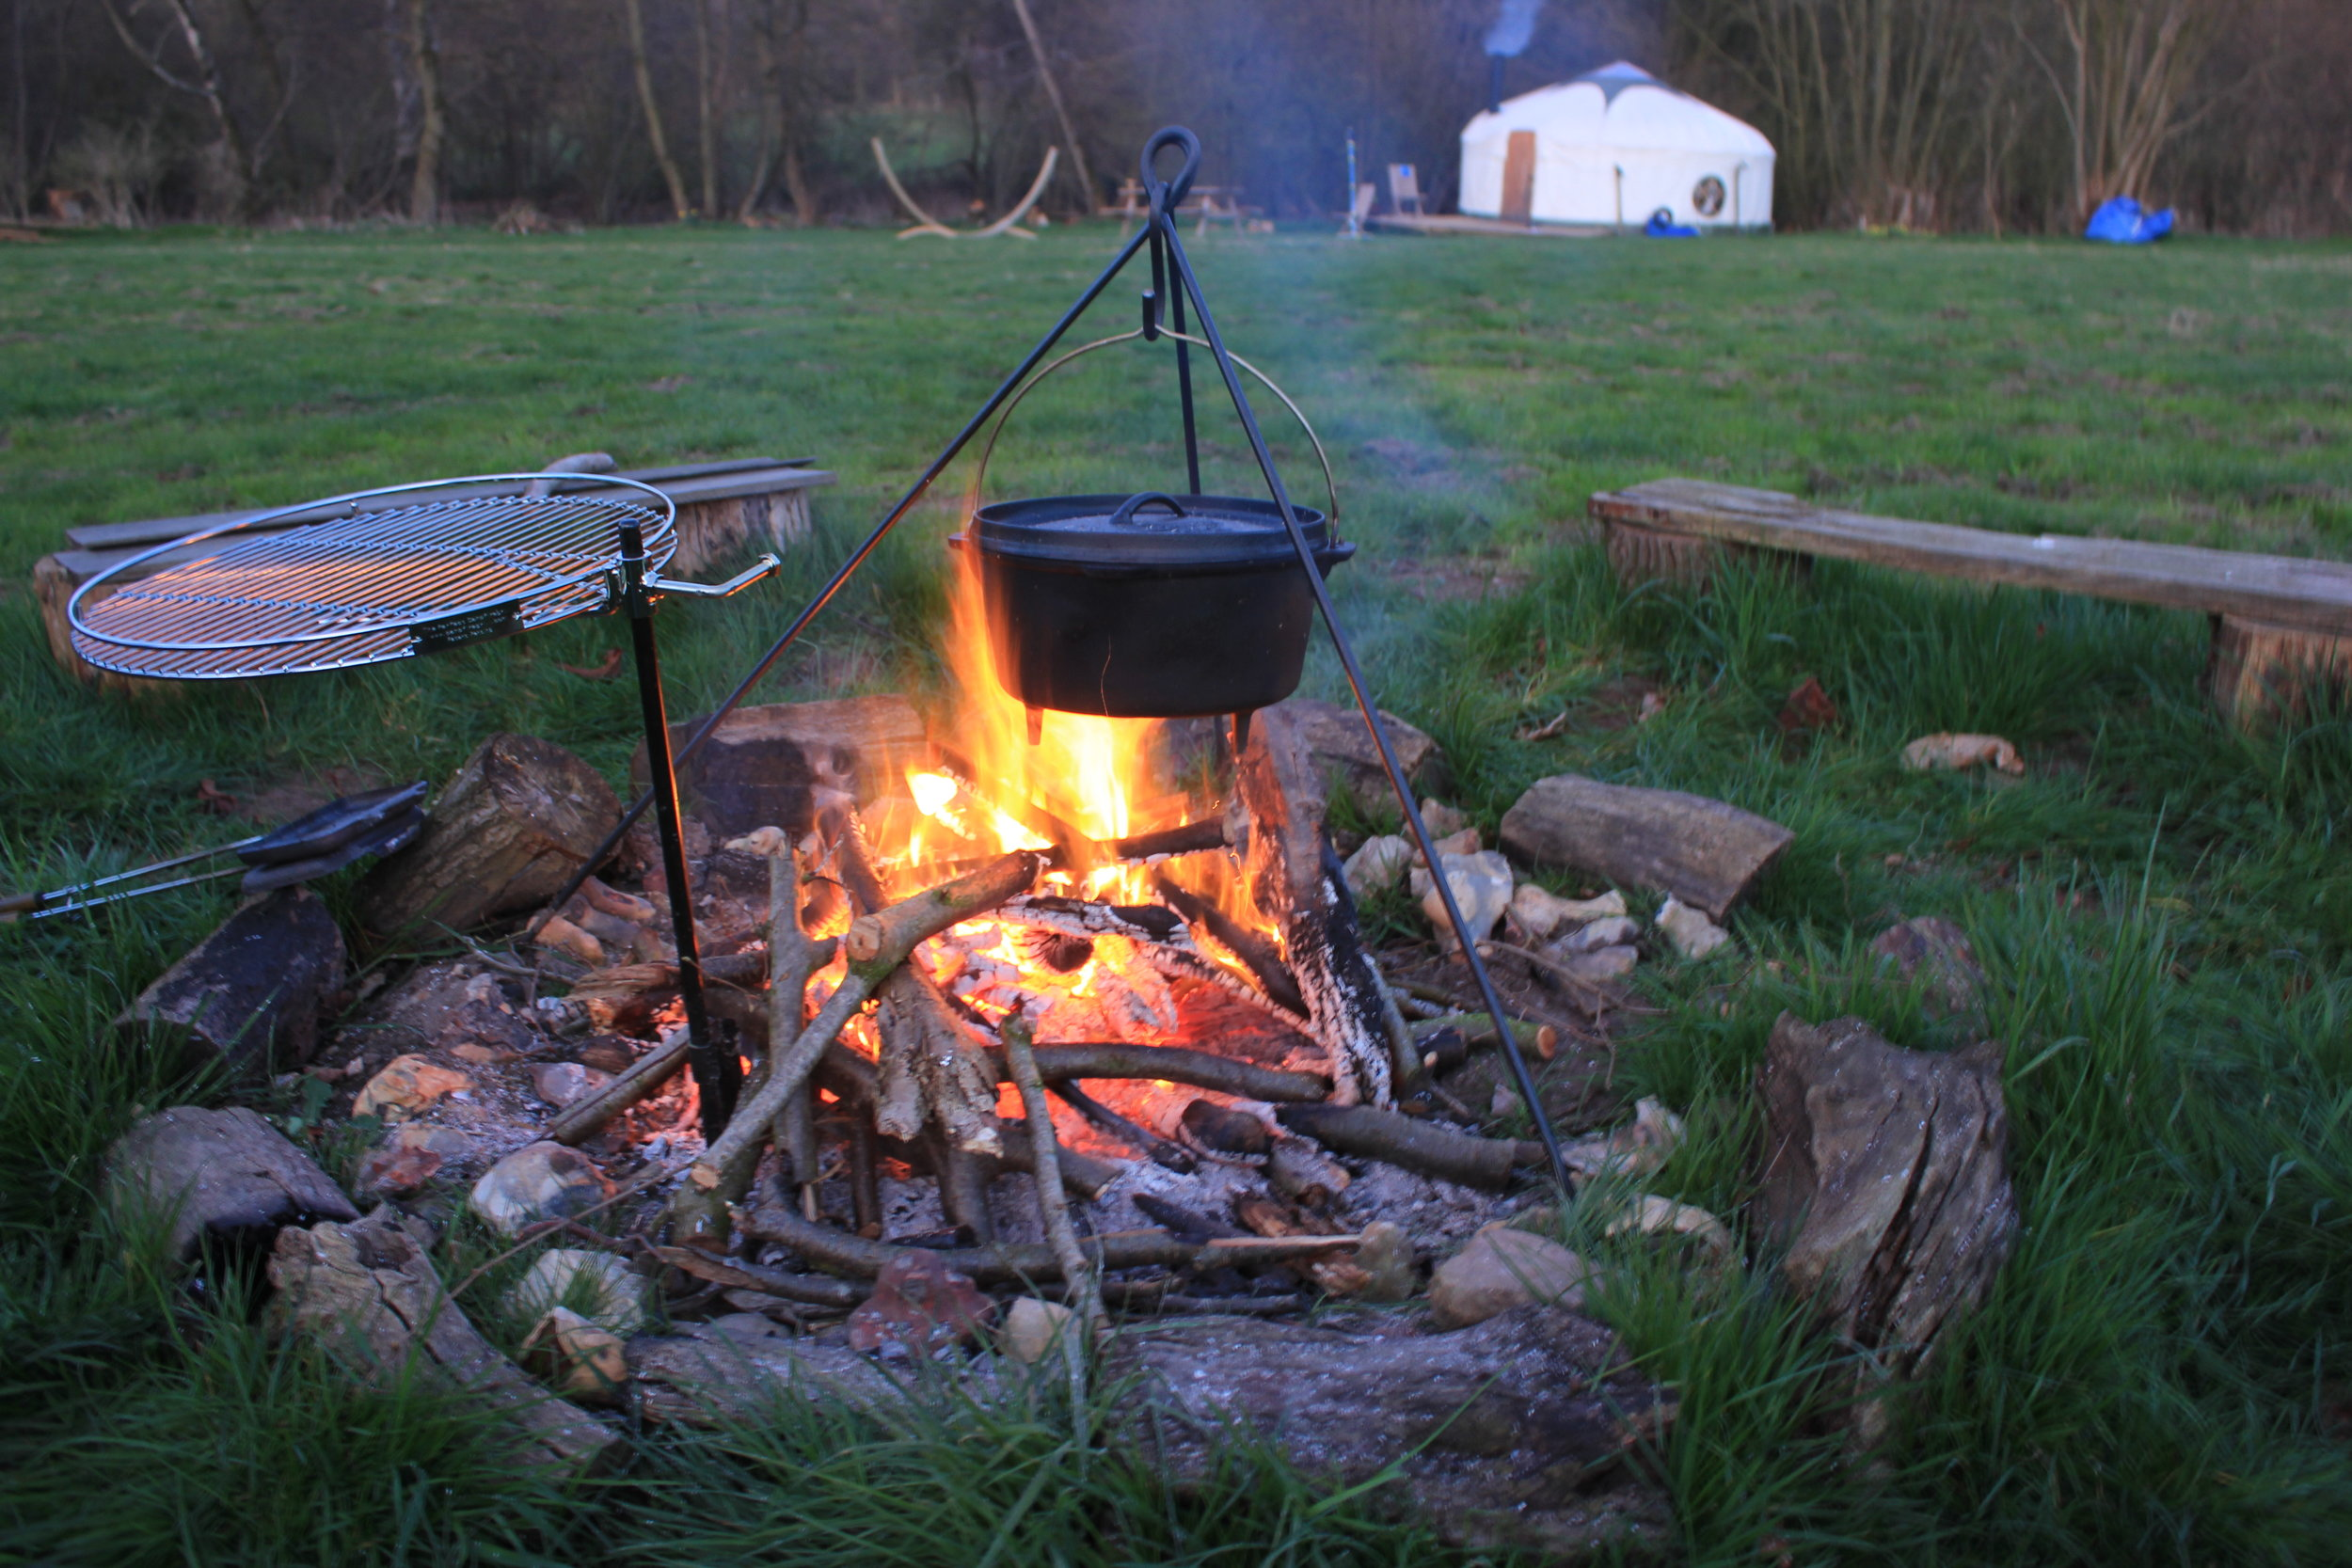 Cooking on the campfire with a dutch oven, pie iron and grill